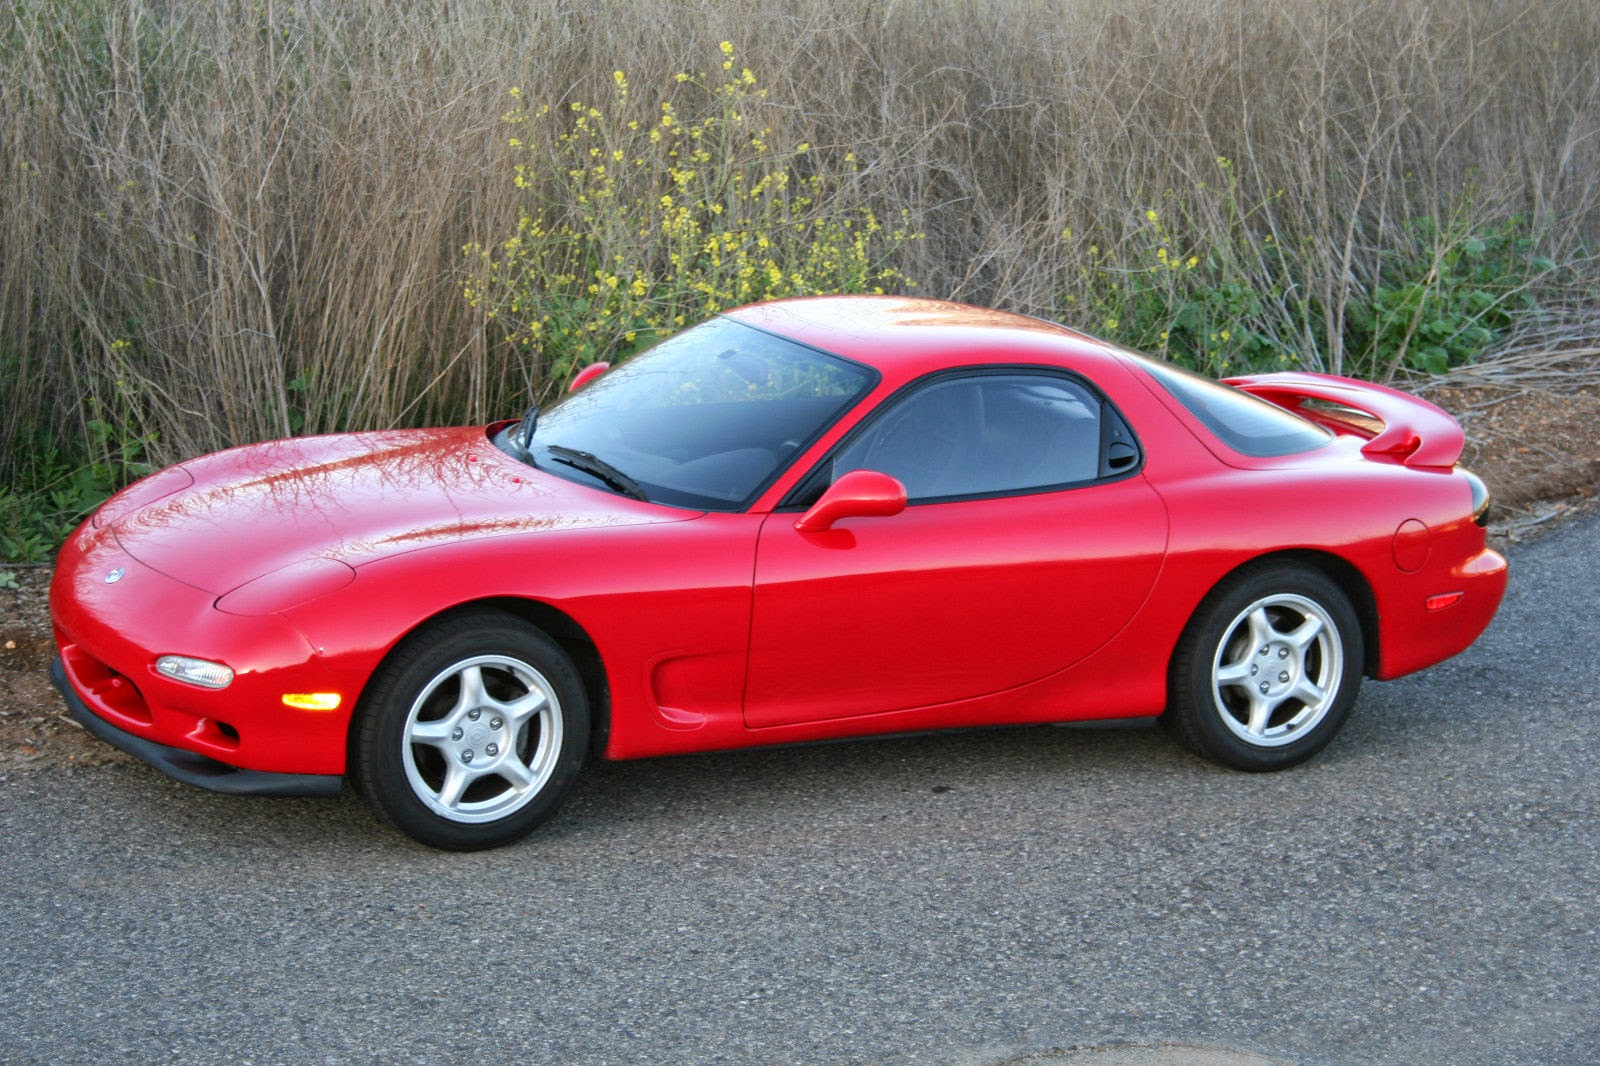 1993 Mazda Rx 7 Twin Turbo Auto Restorationice